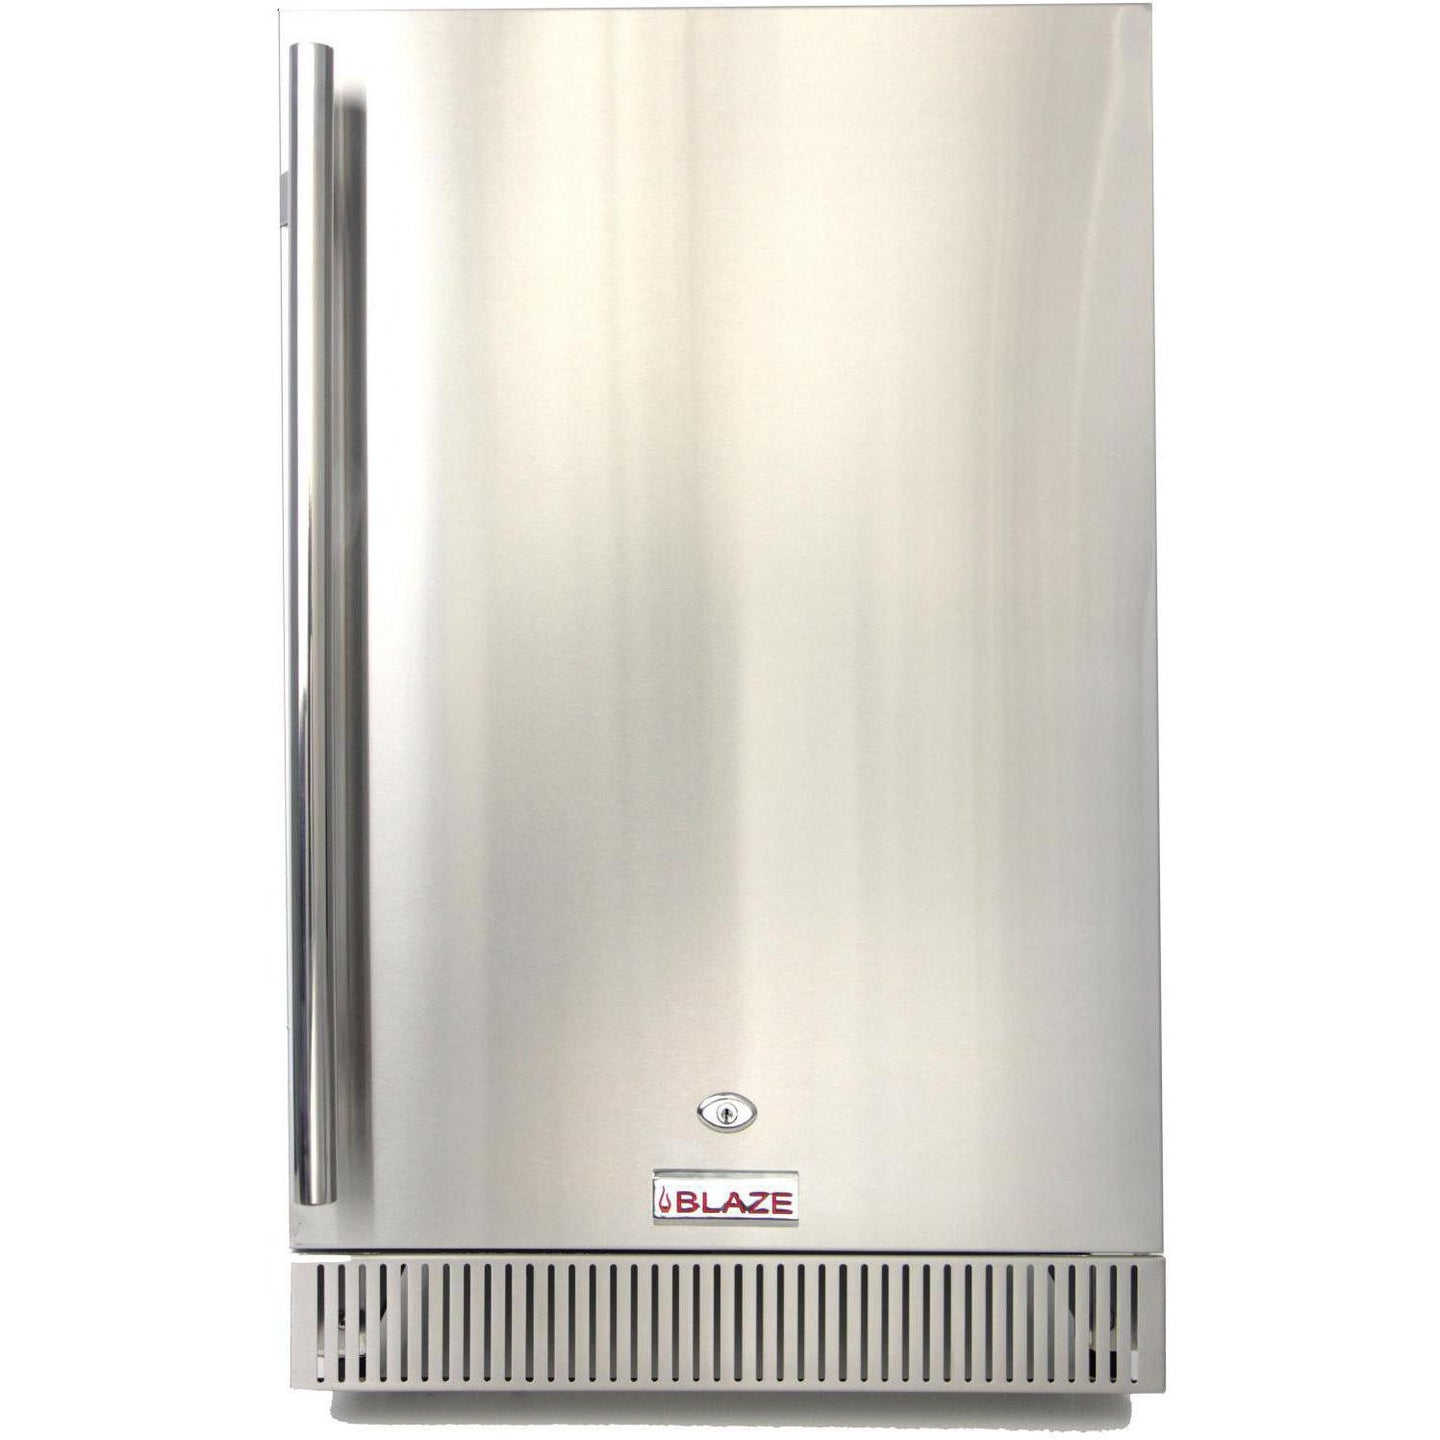 Blaze 20-Inch 4.1 Cu. Ft. Outdoor Stainless Steel Compact Refrigerator - UL Approved - BLZ-SSRF-40DH